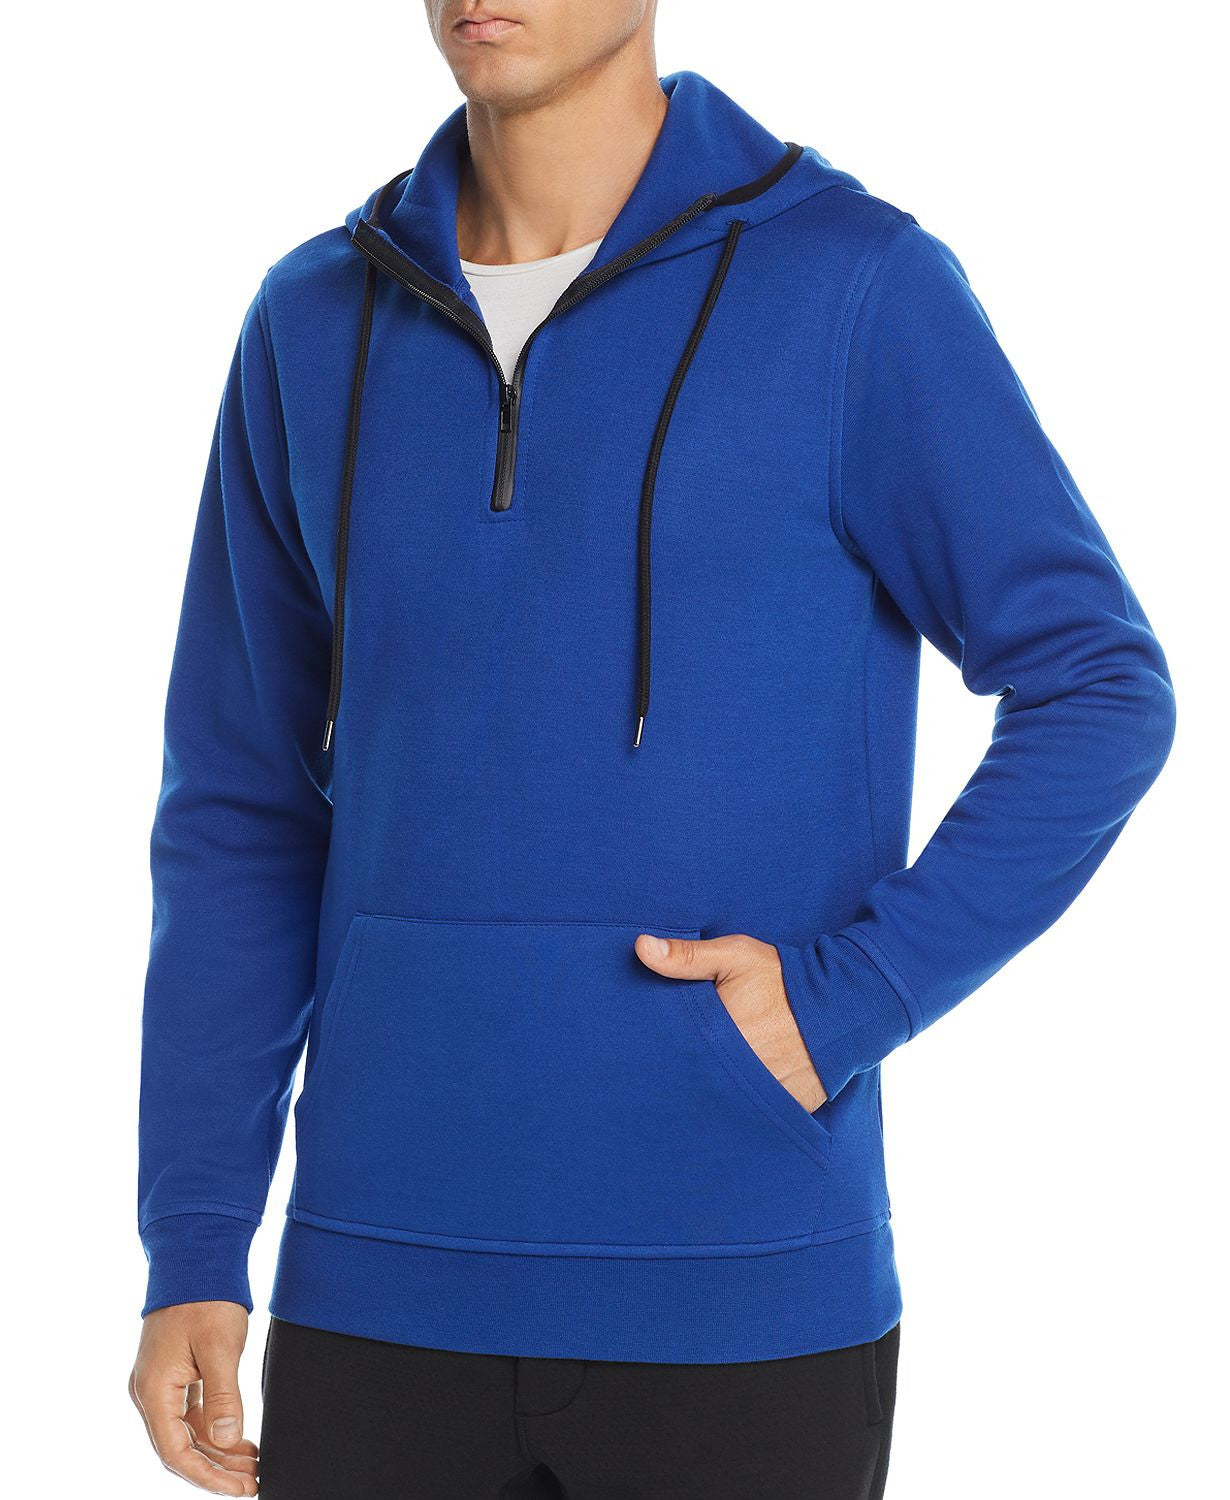 Pacific & Park Hooded Sweatshirt Royal Blue